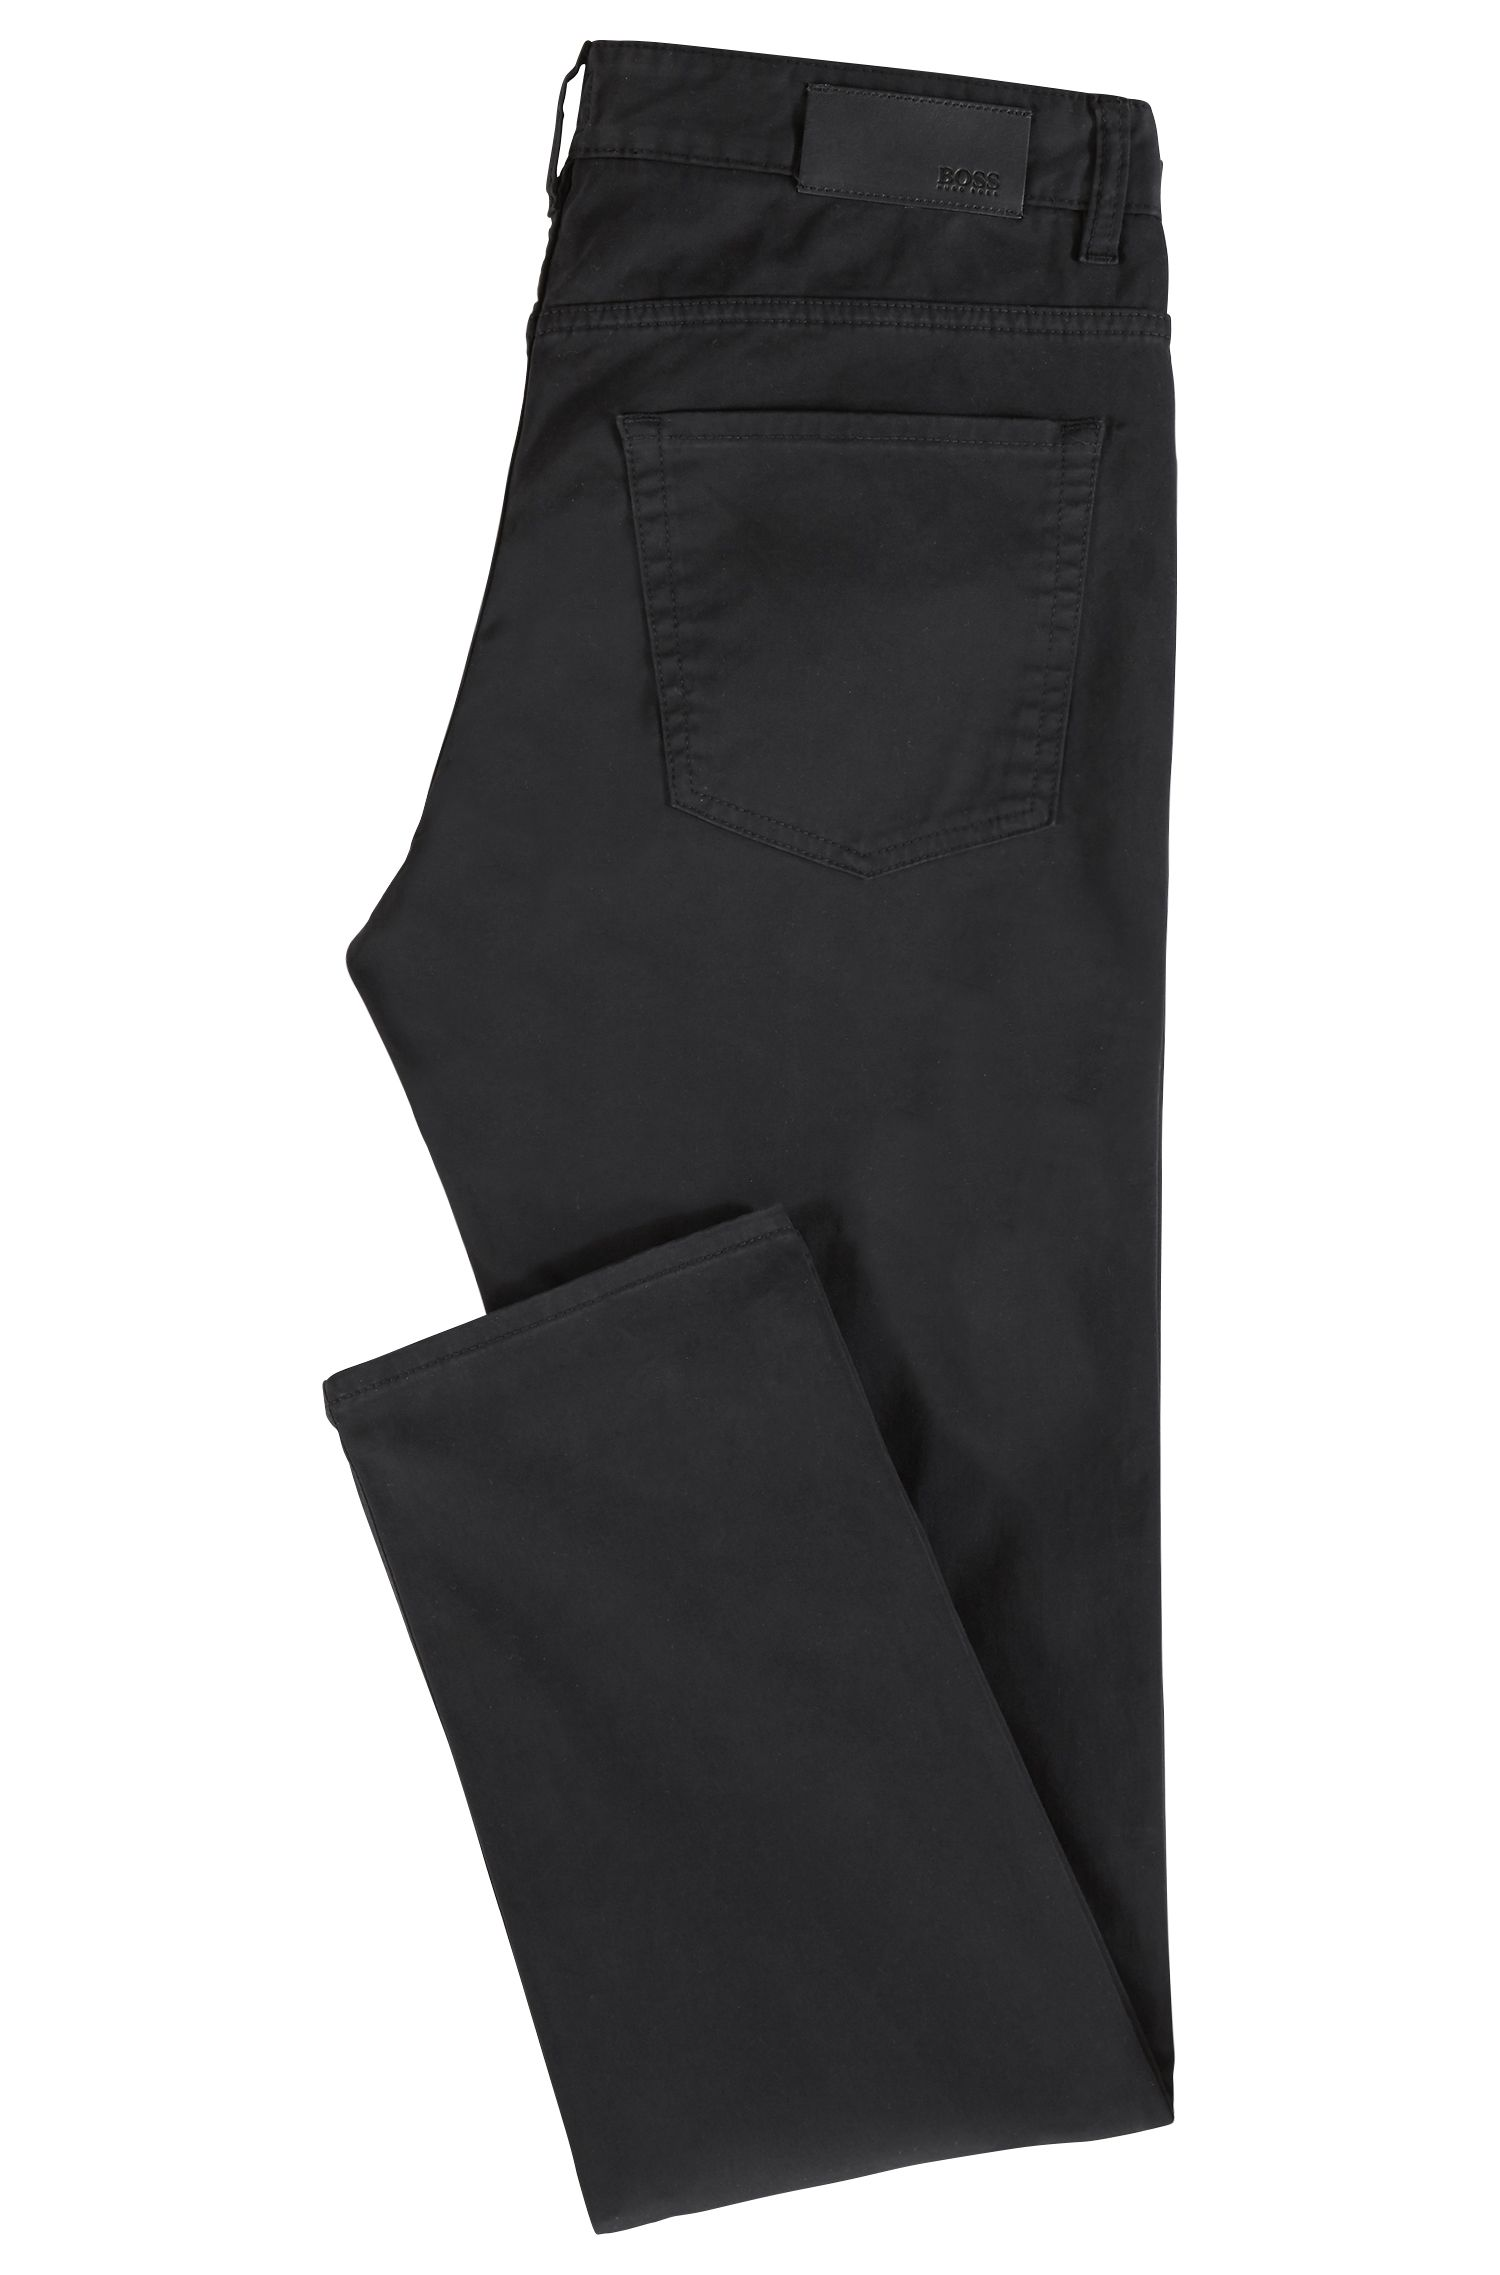 Slim-fit jeans in diamond-brushed satin denim, Black